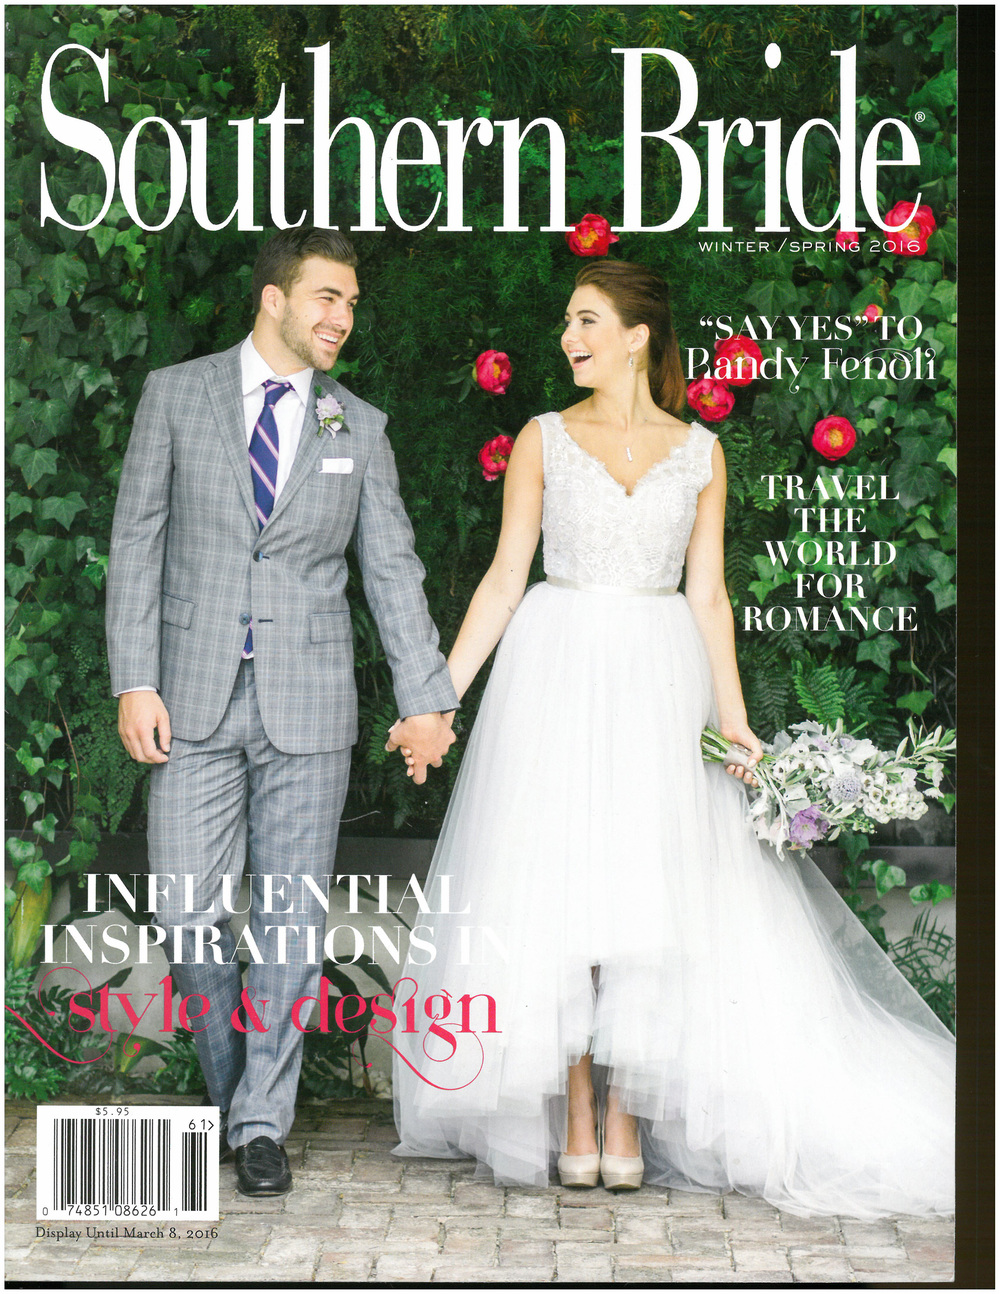 Southern Bride Couver Winter : Spring 2016.jpg